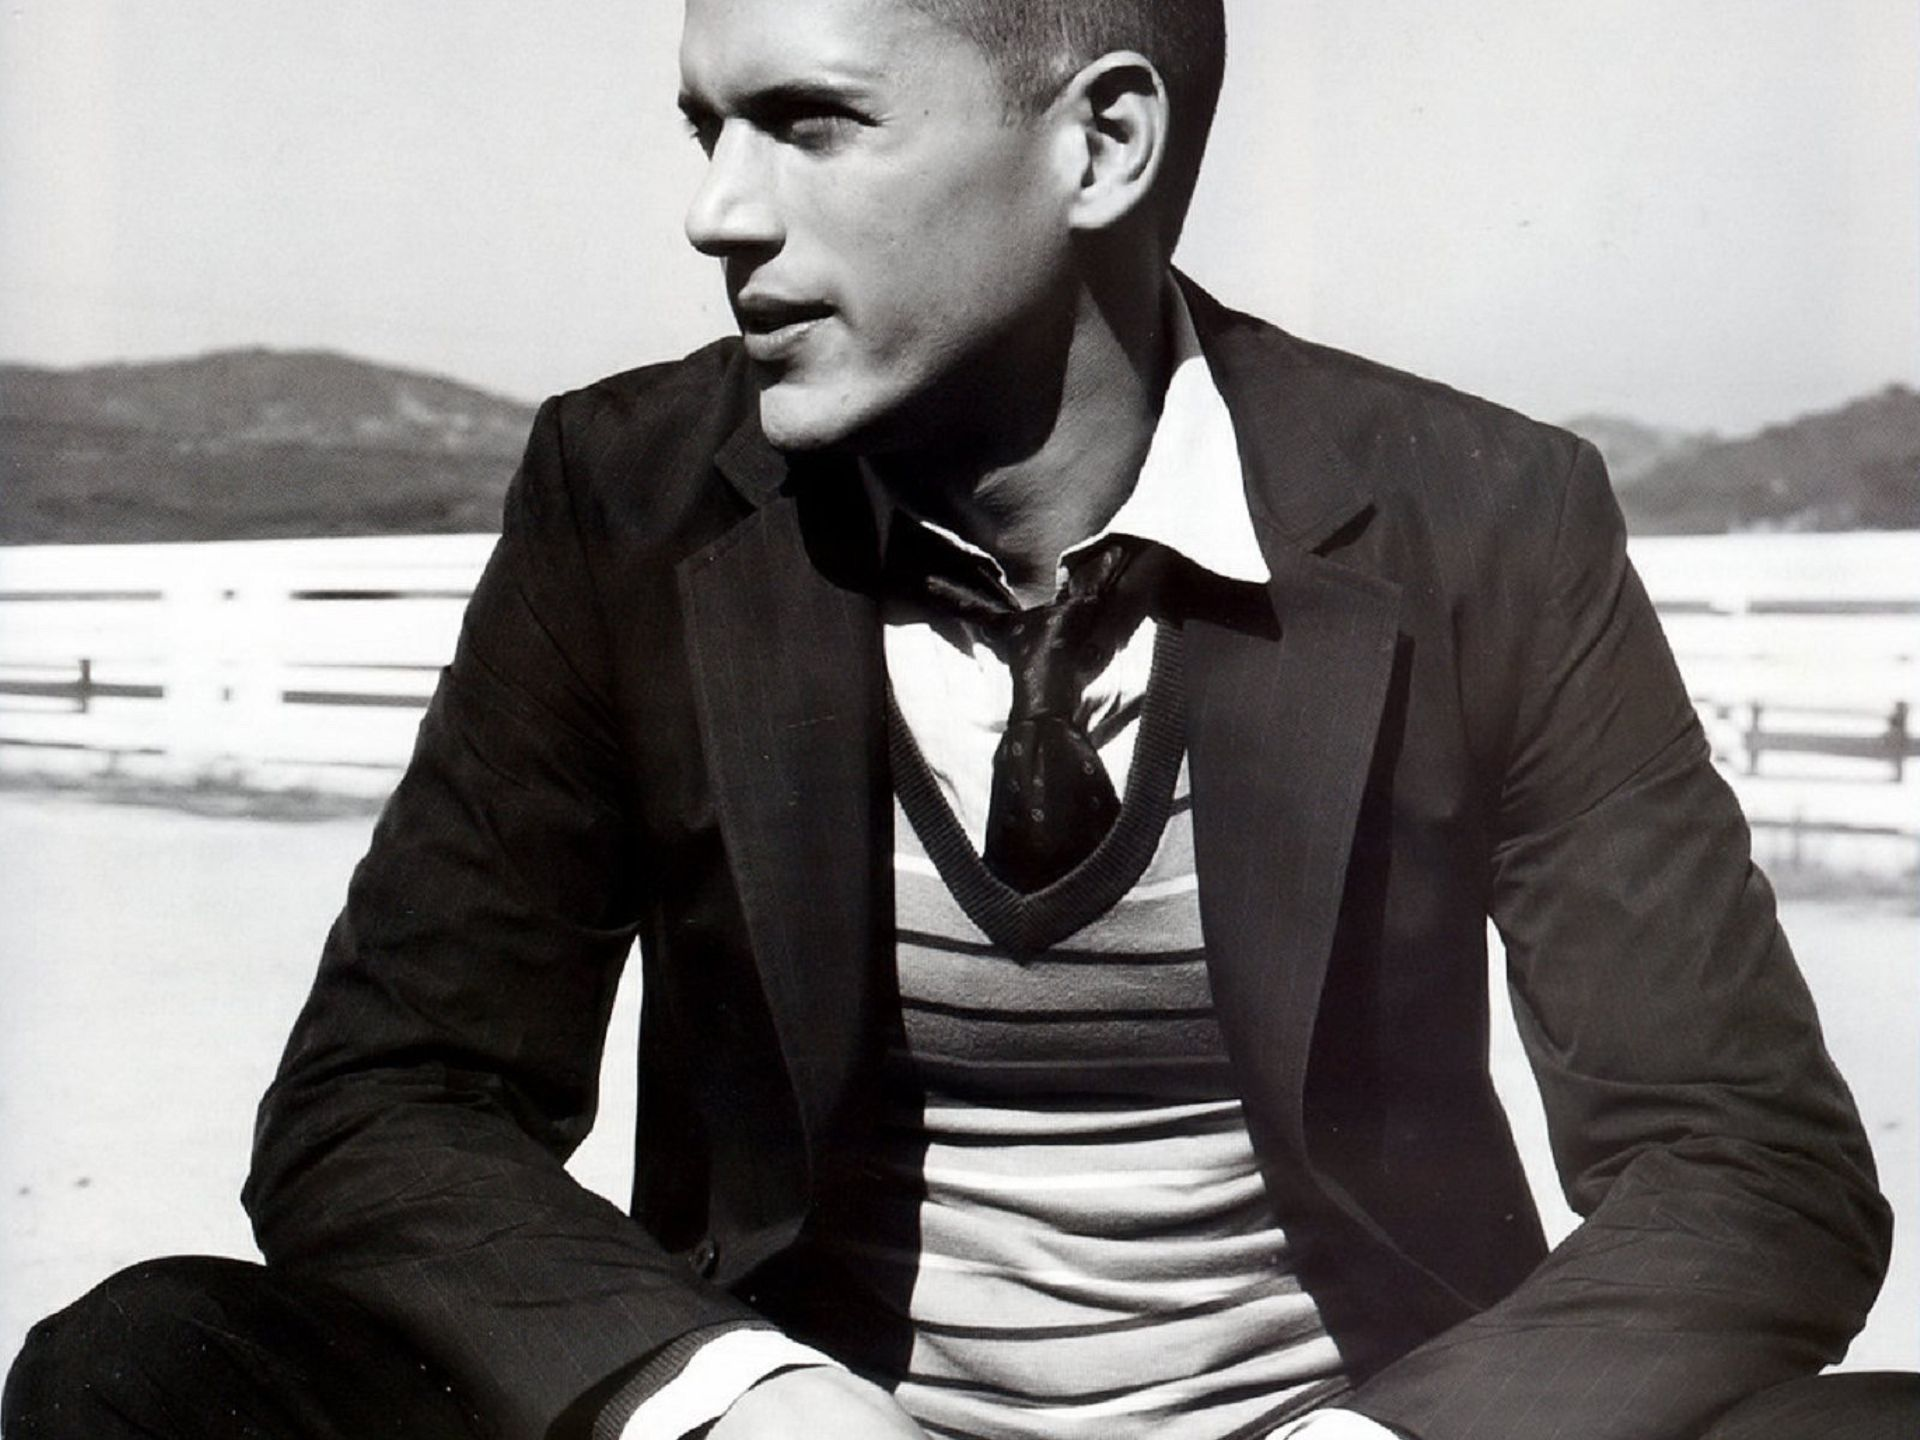 wentworth miller image gallery (10)